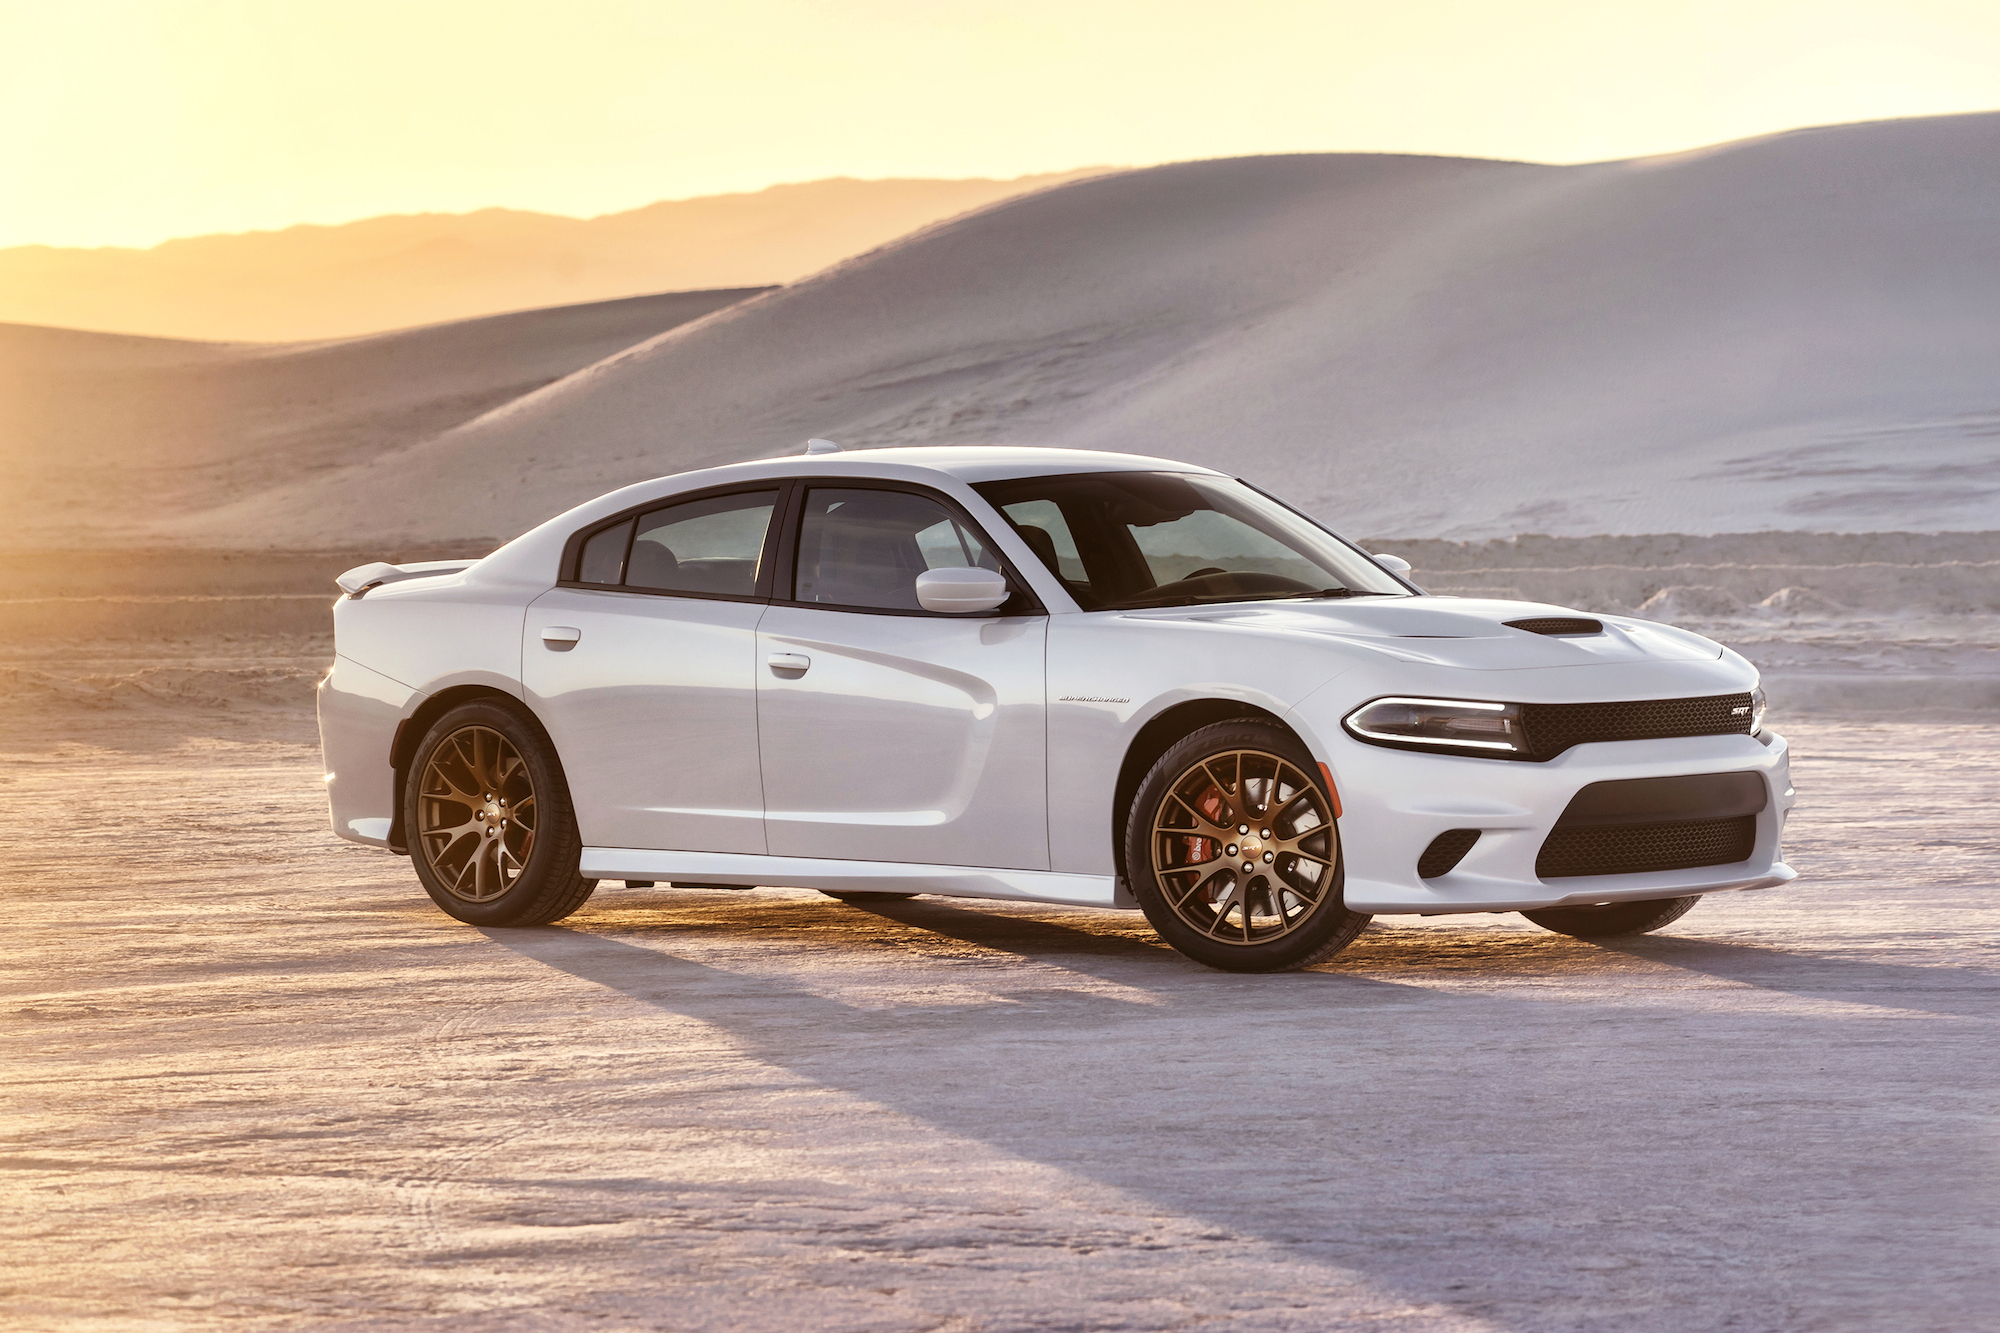 2015 dodge charger srt hellcat priced from 63 995. Black Bedroom Furniture Sets. Home Design Ideas